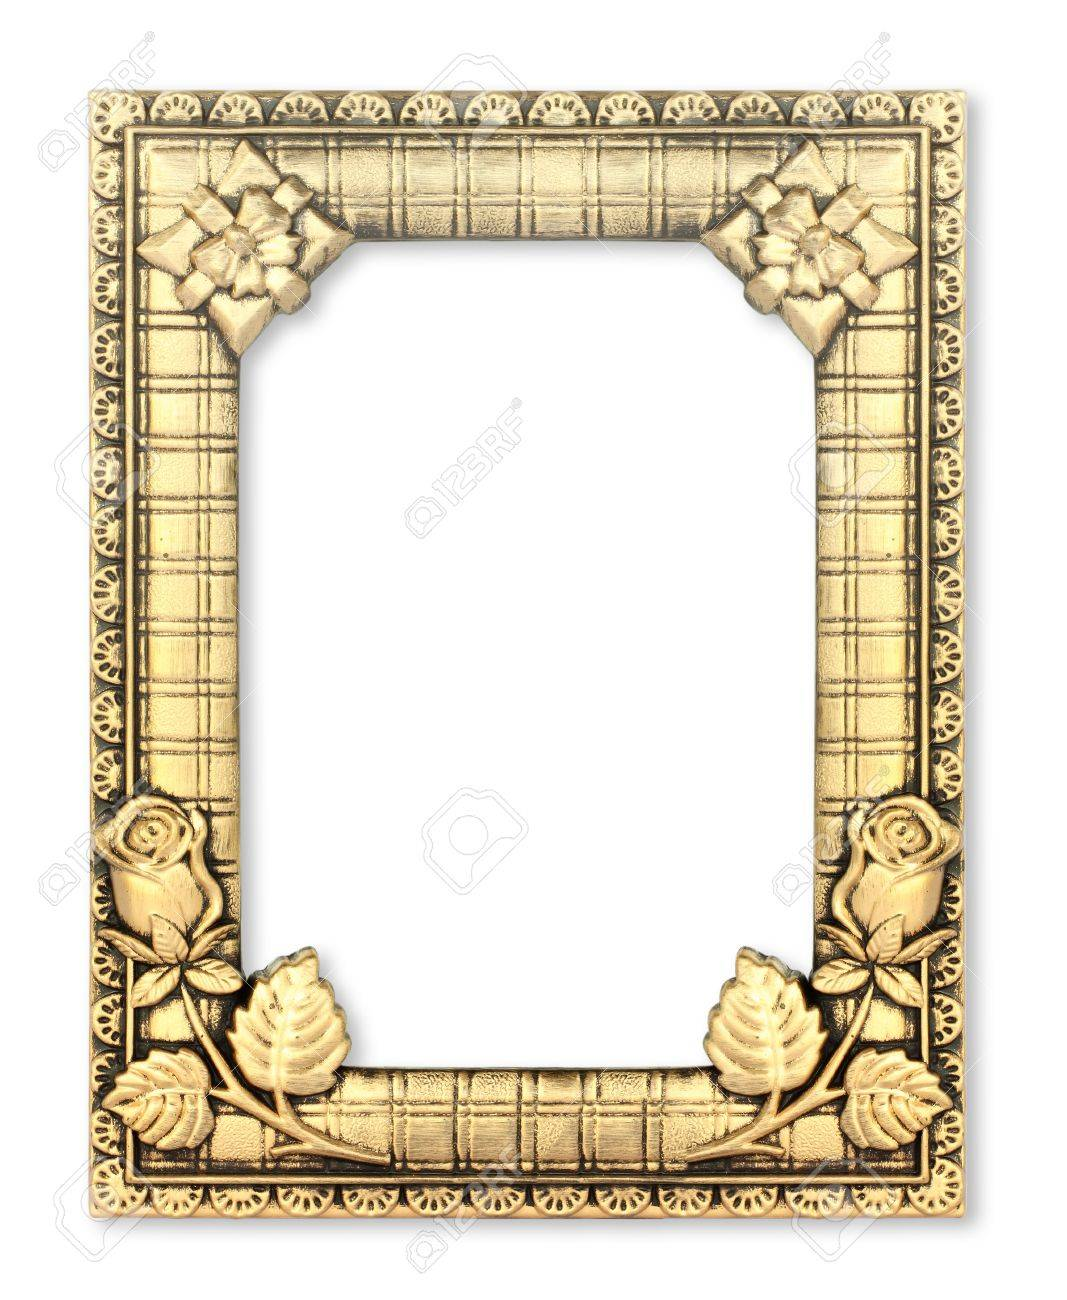 The gold frame on the white background Stock Photo - 14250775